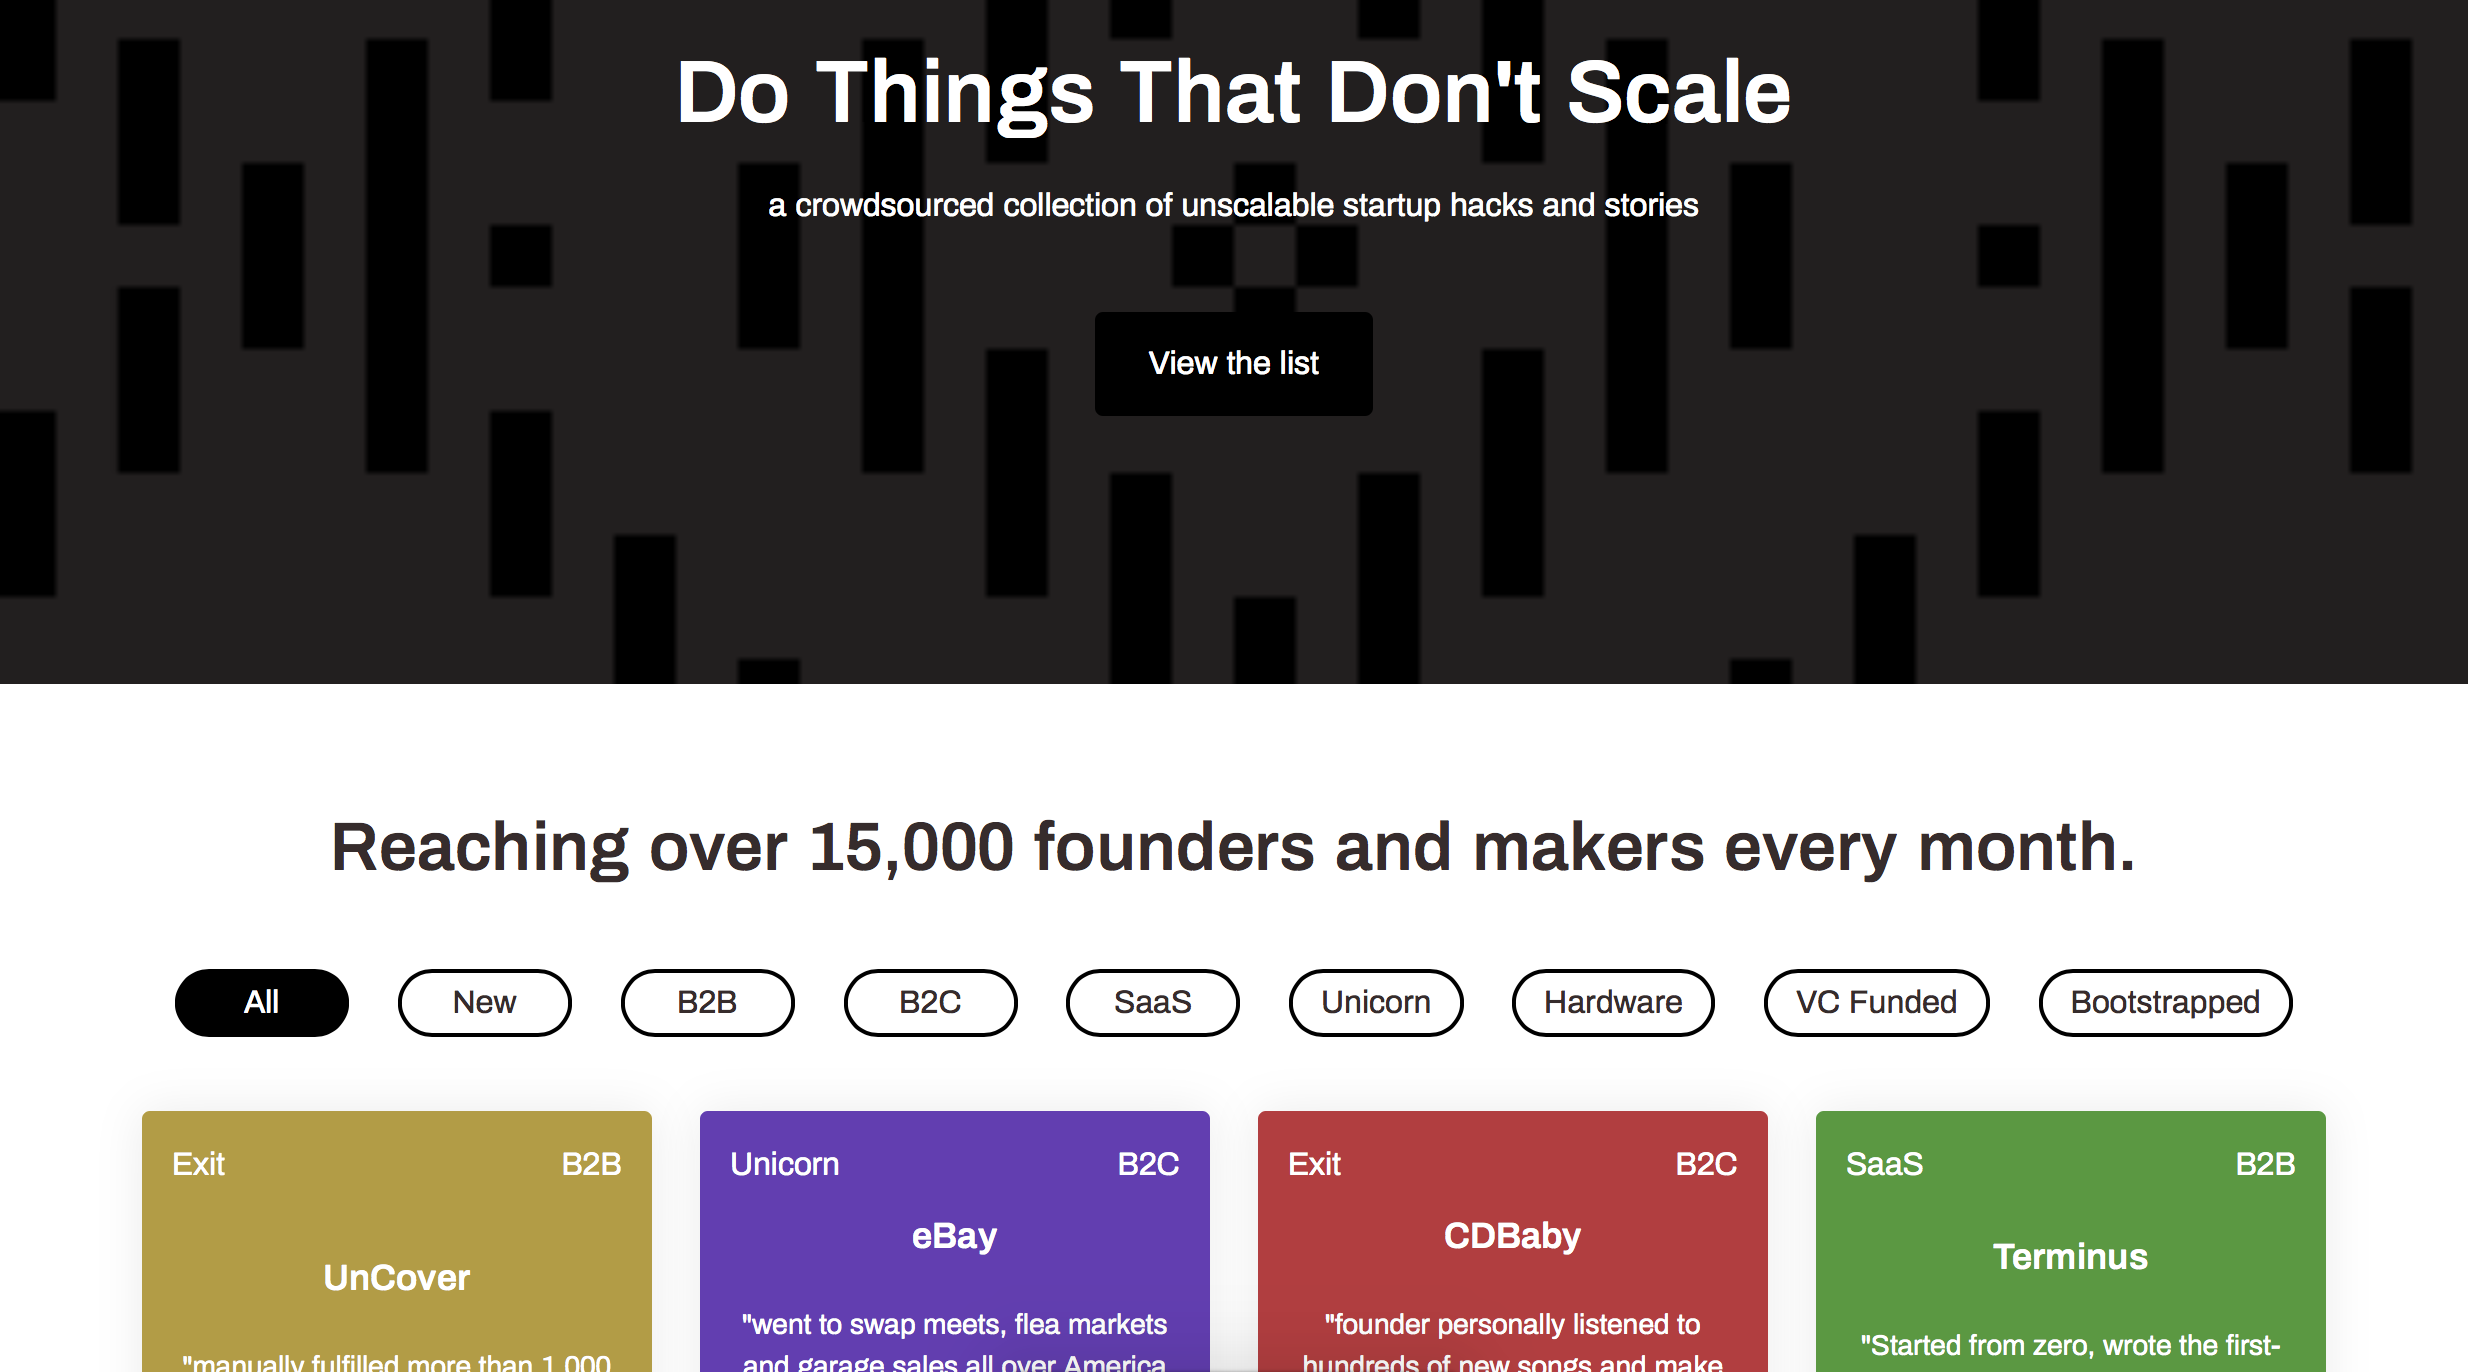 Crowdsourced stories of founders that succeeded doing things that didn't scale